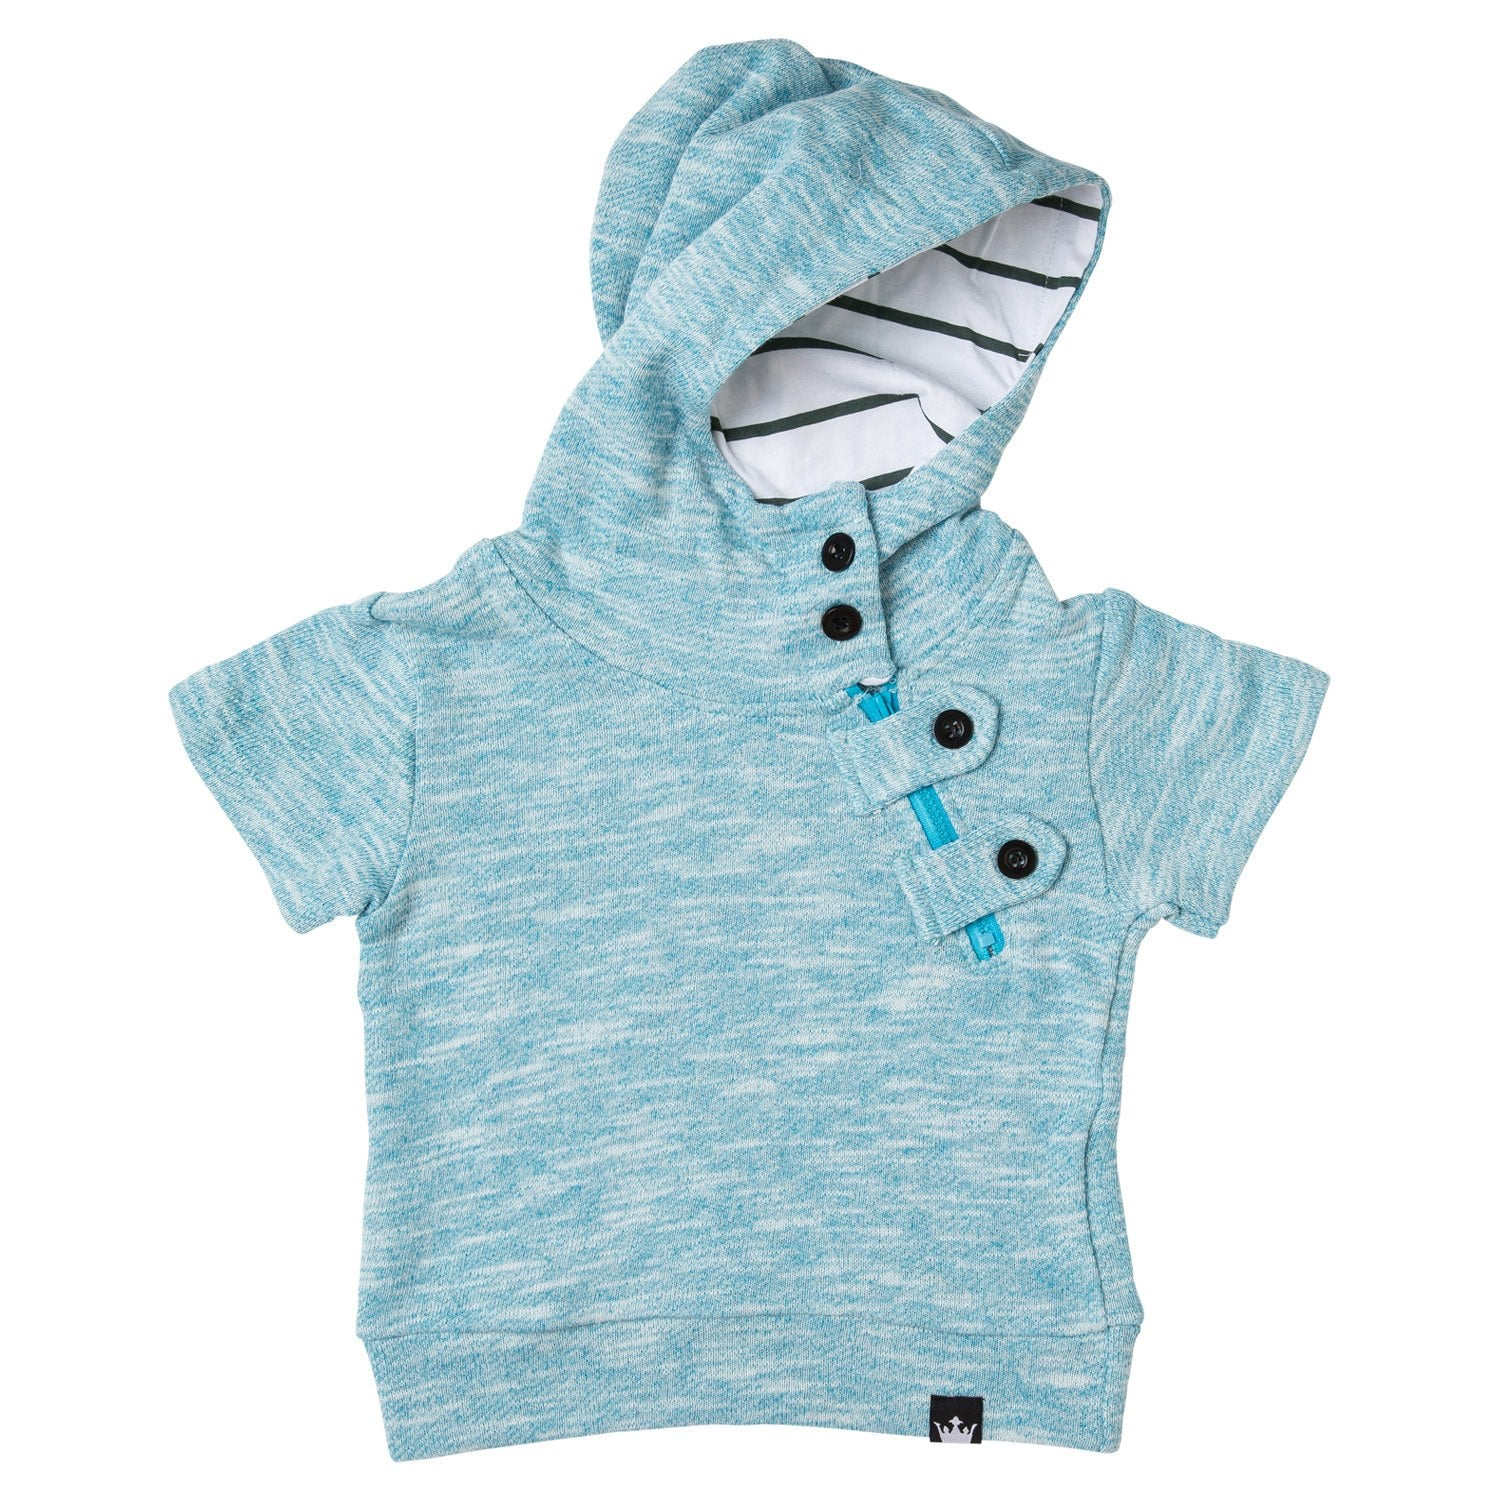 ftzh-blu-blue-french-terry-asymmetrical-zip-up-hoodie-front-product.jpg